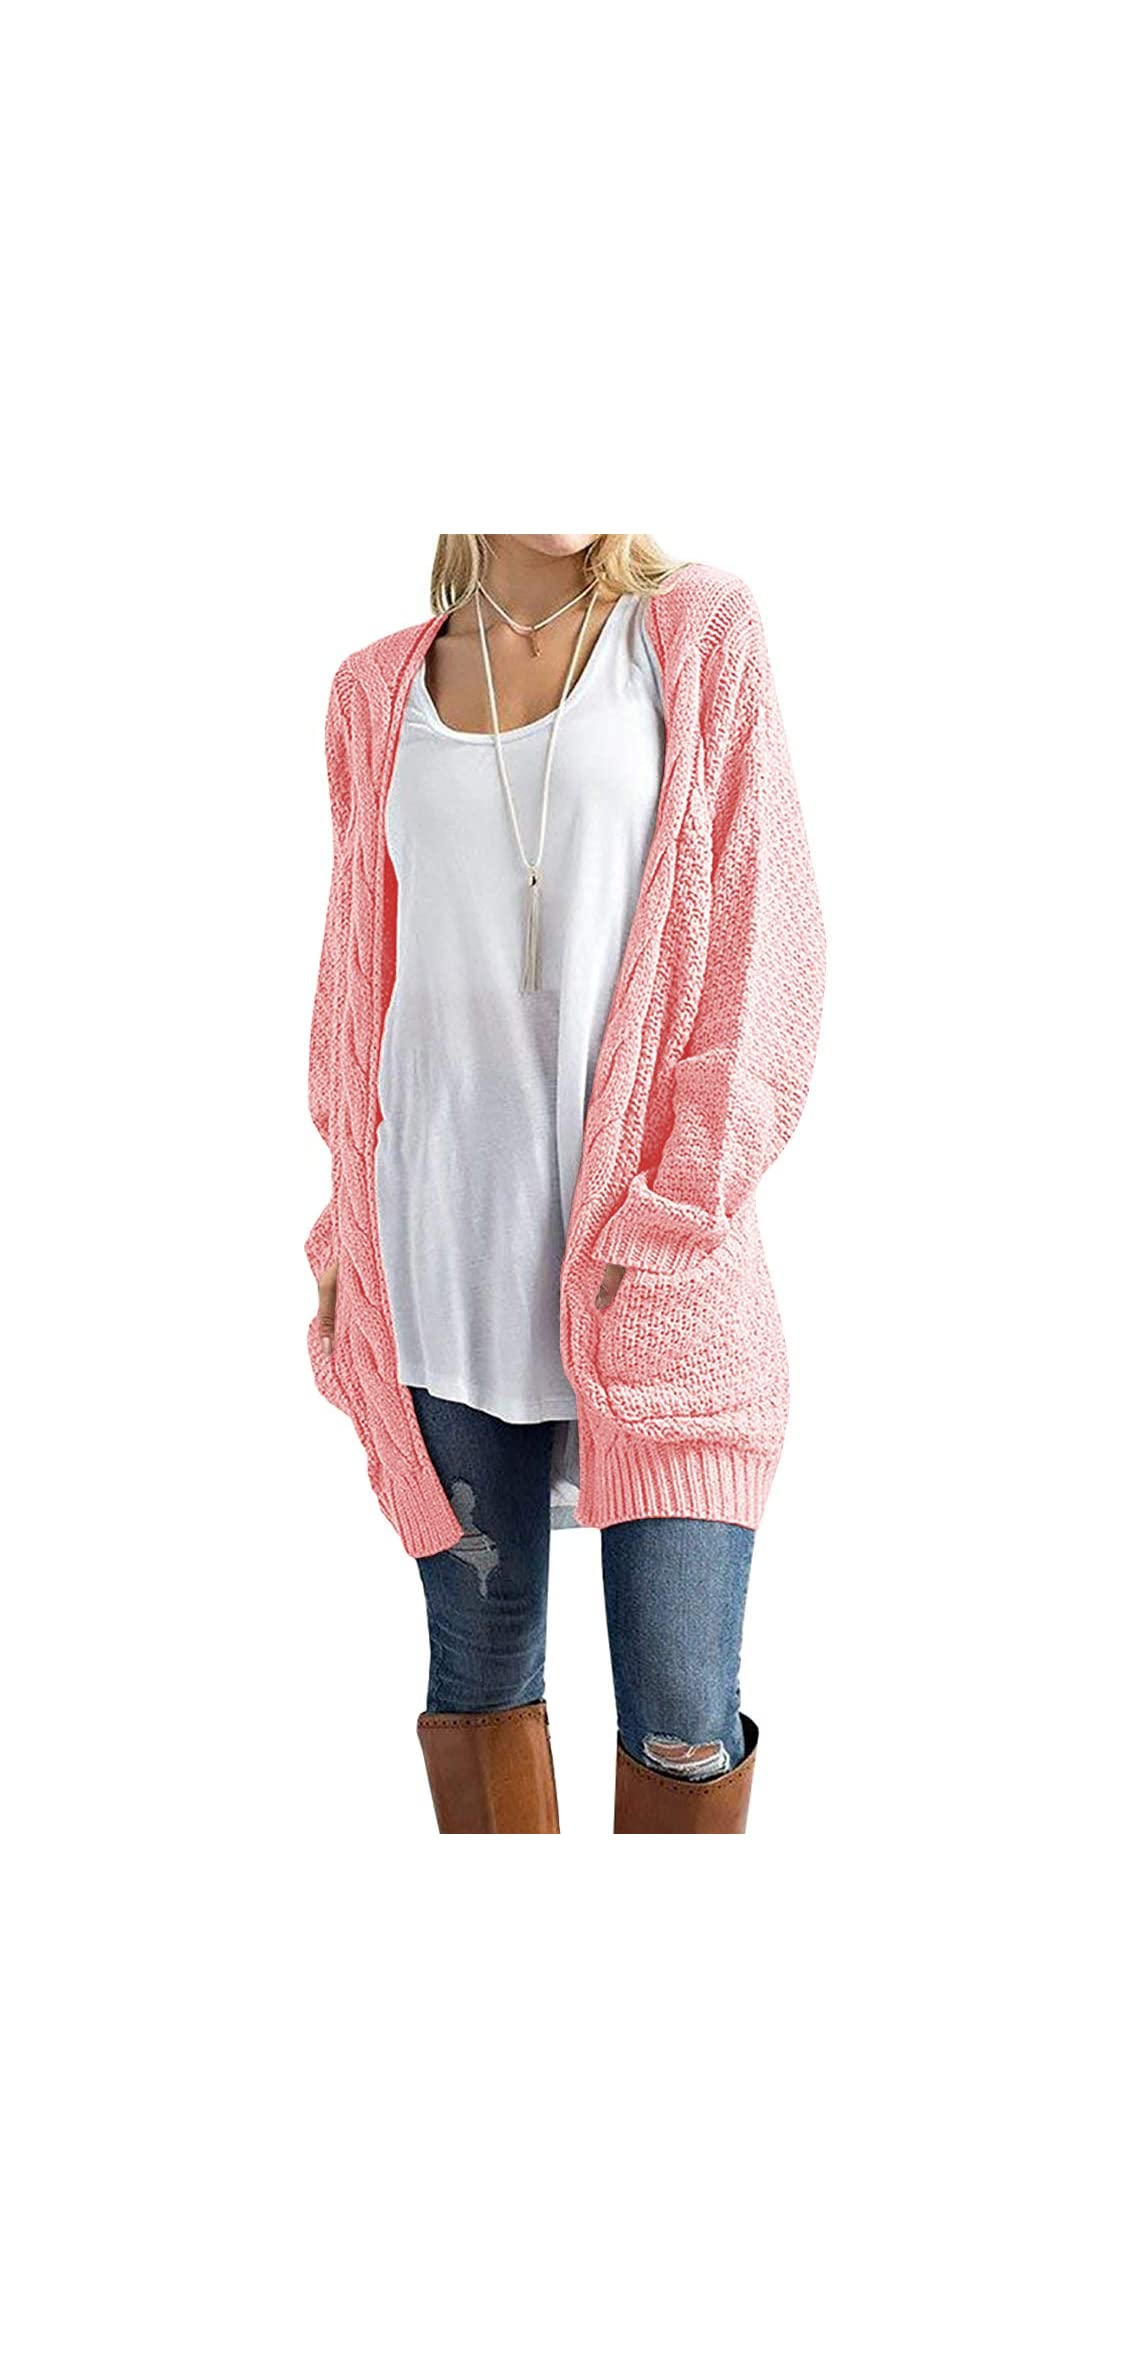 Women's Loose Open Front Long Sleeve Solid Color Knit